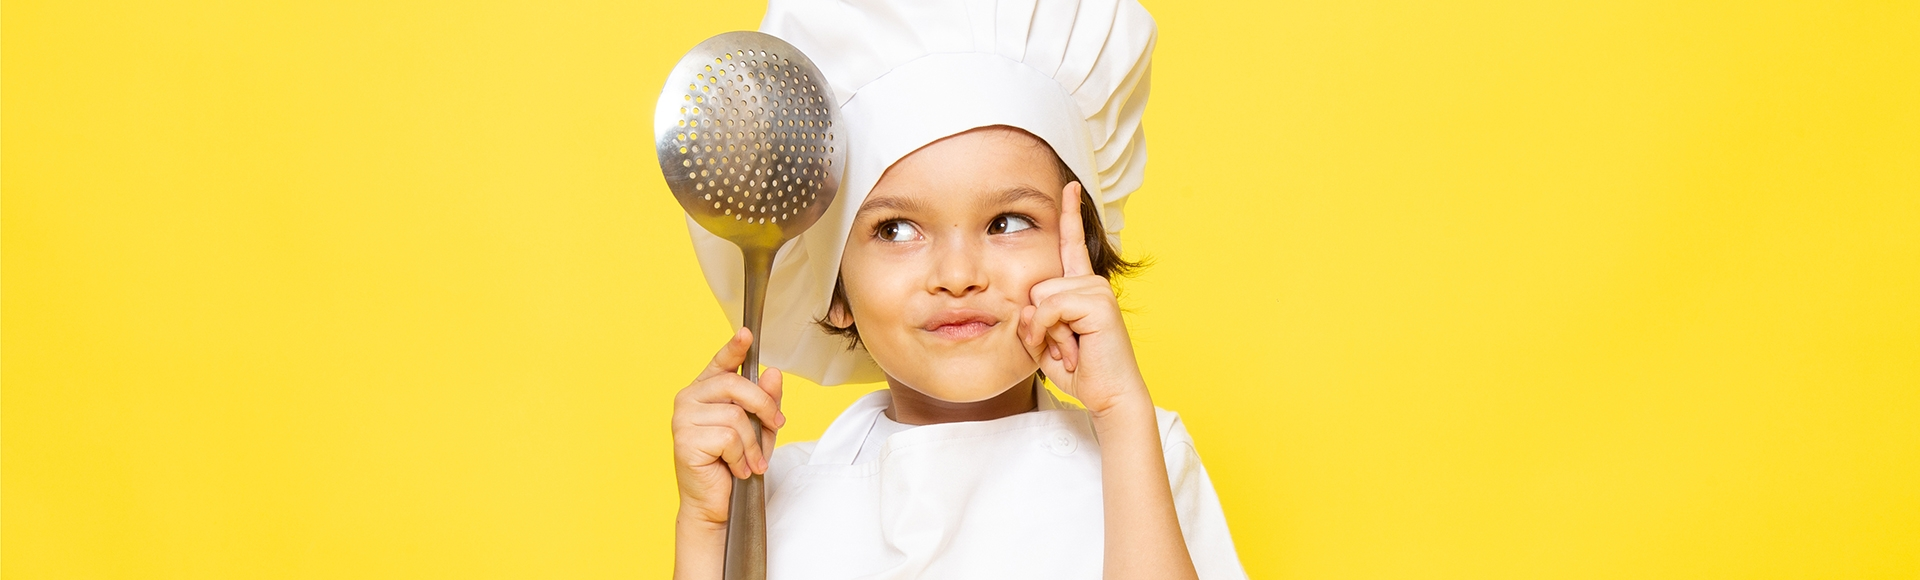 young boy wearing a chef's hat thinking about what to cook